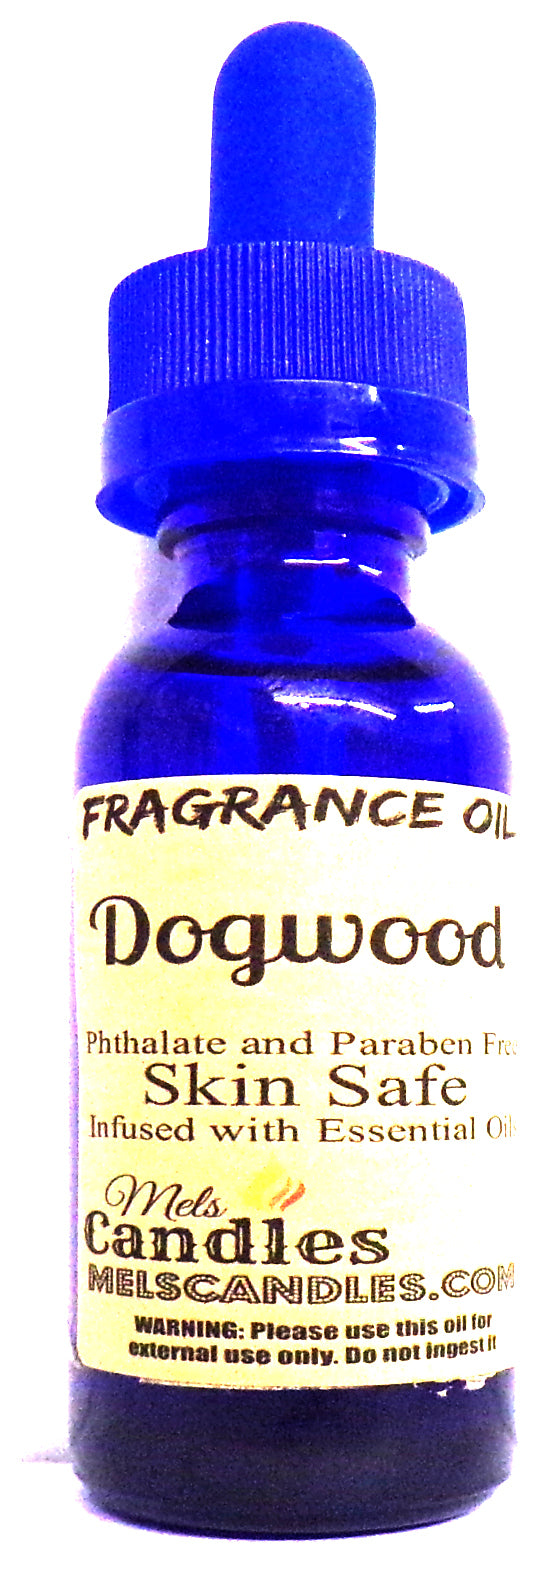 Dogwood 1 oz   29.5 ml GLASS Bottle - Premium Grade A Quality Fragrance Oil, STRONG OIL - Skin Safe Oil